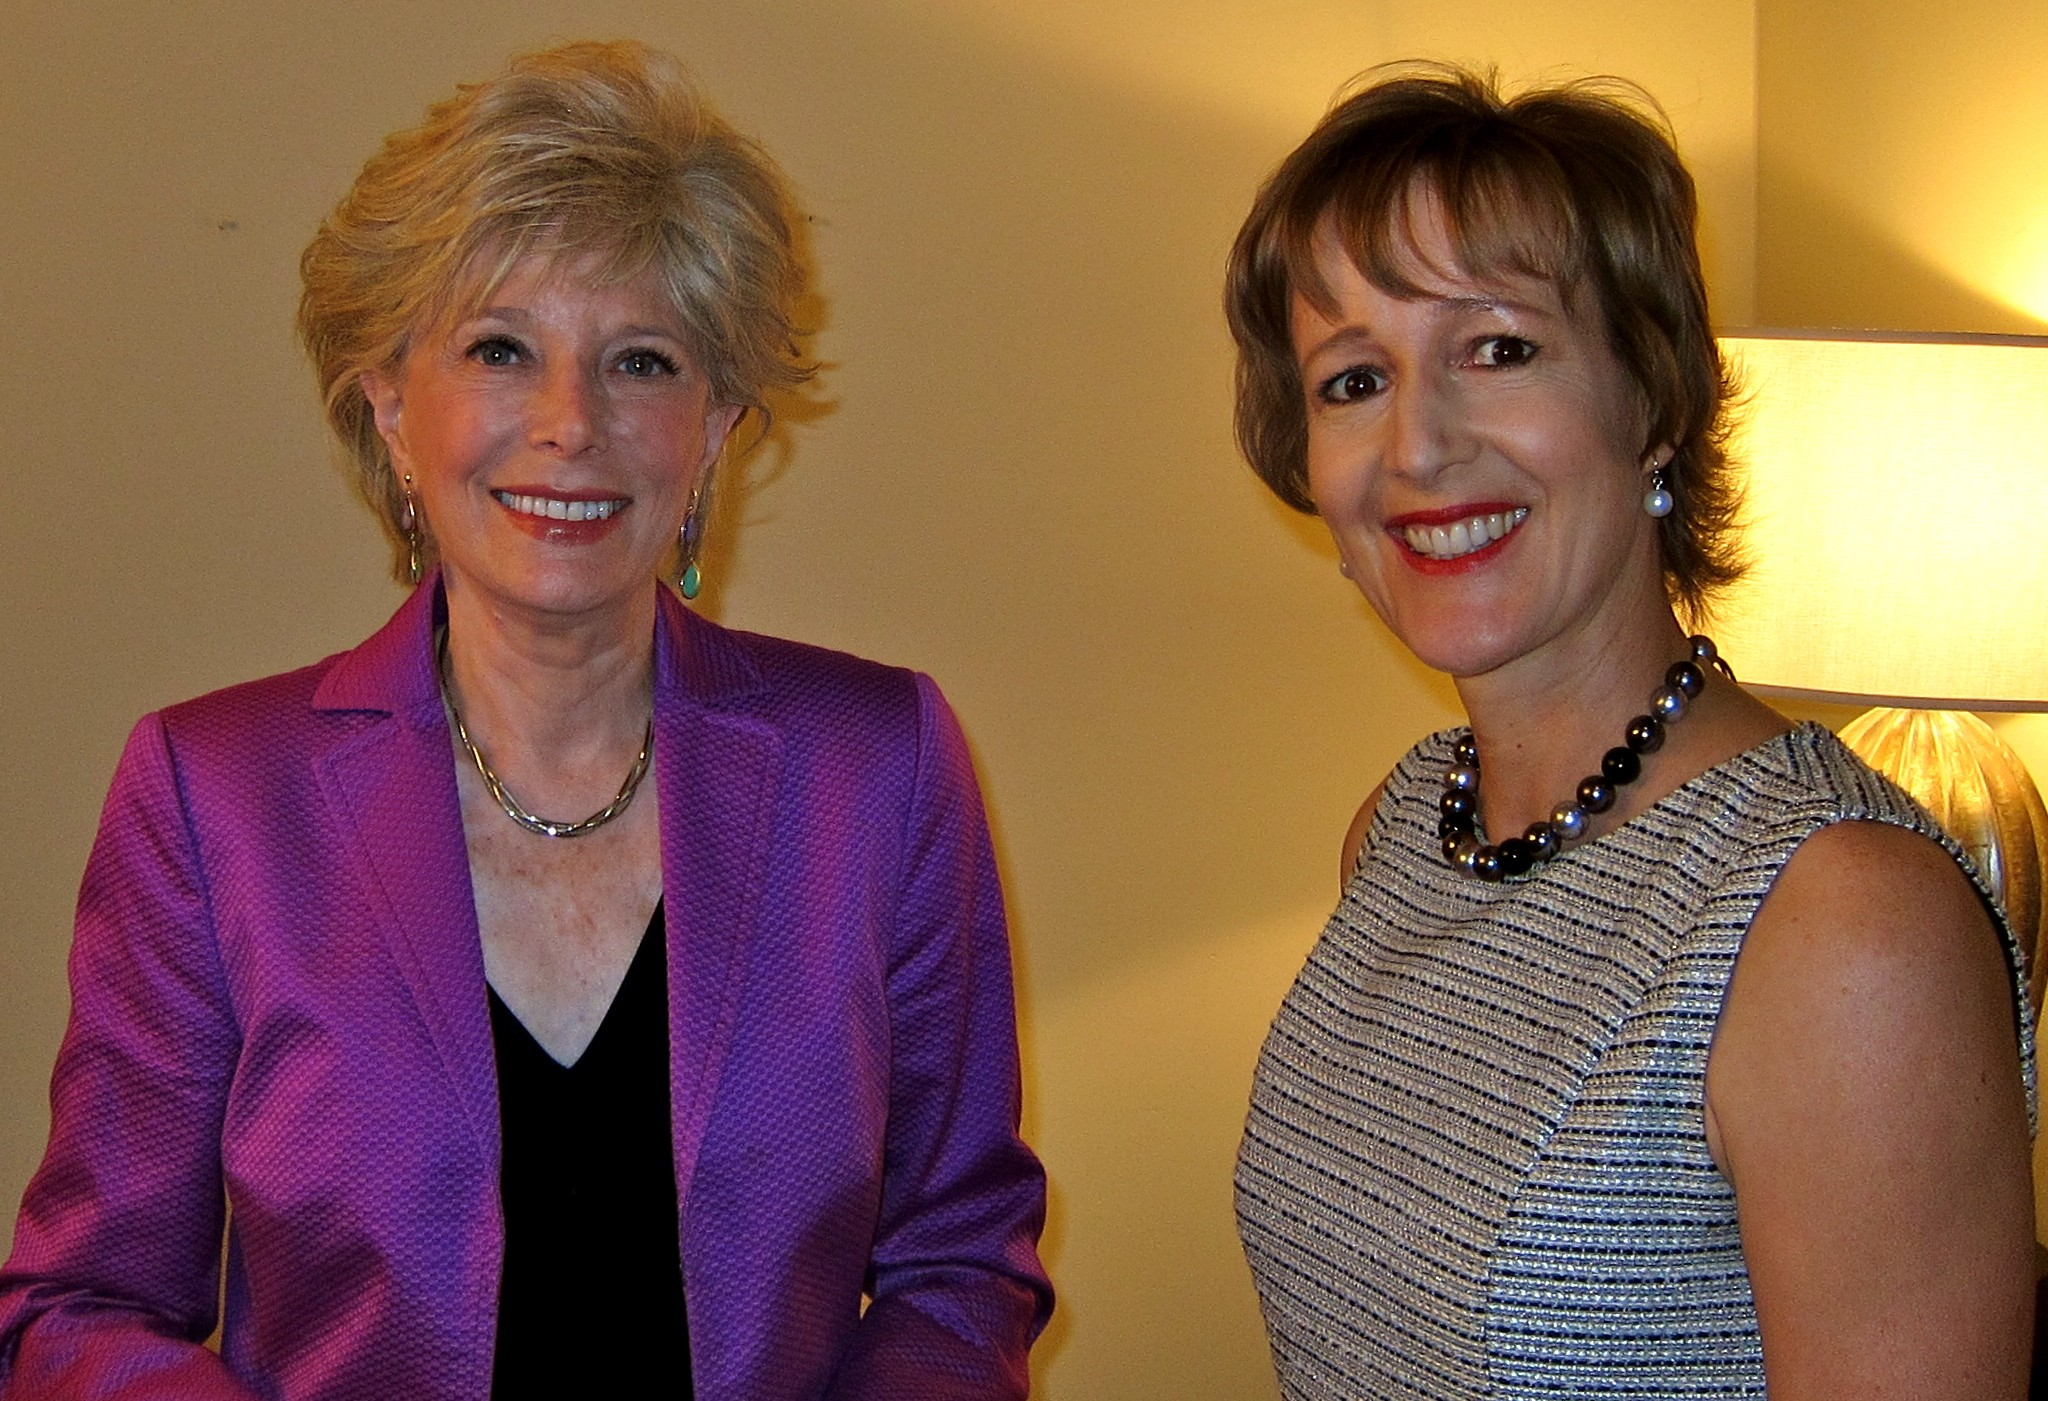 Lesley Stahl on Barbara Walters: Why They're Soul Sisters